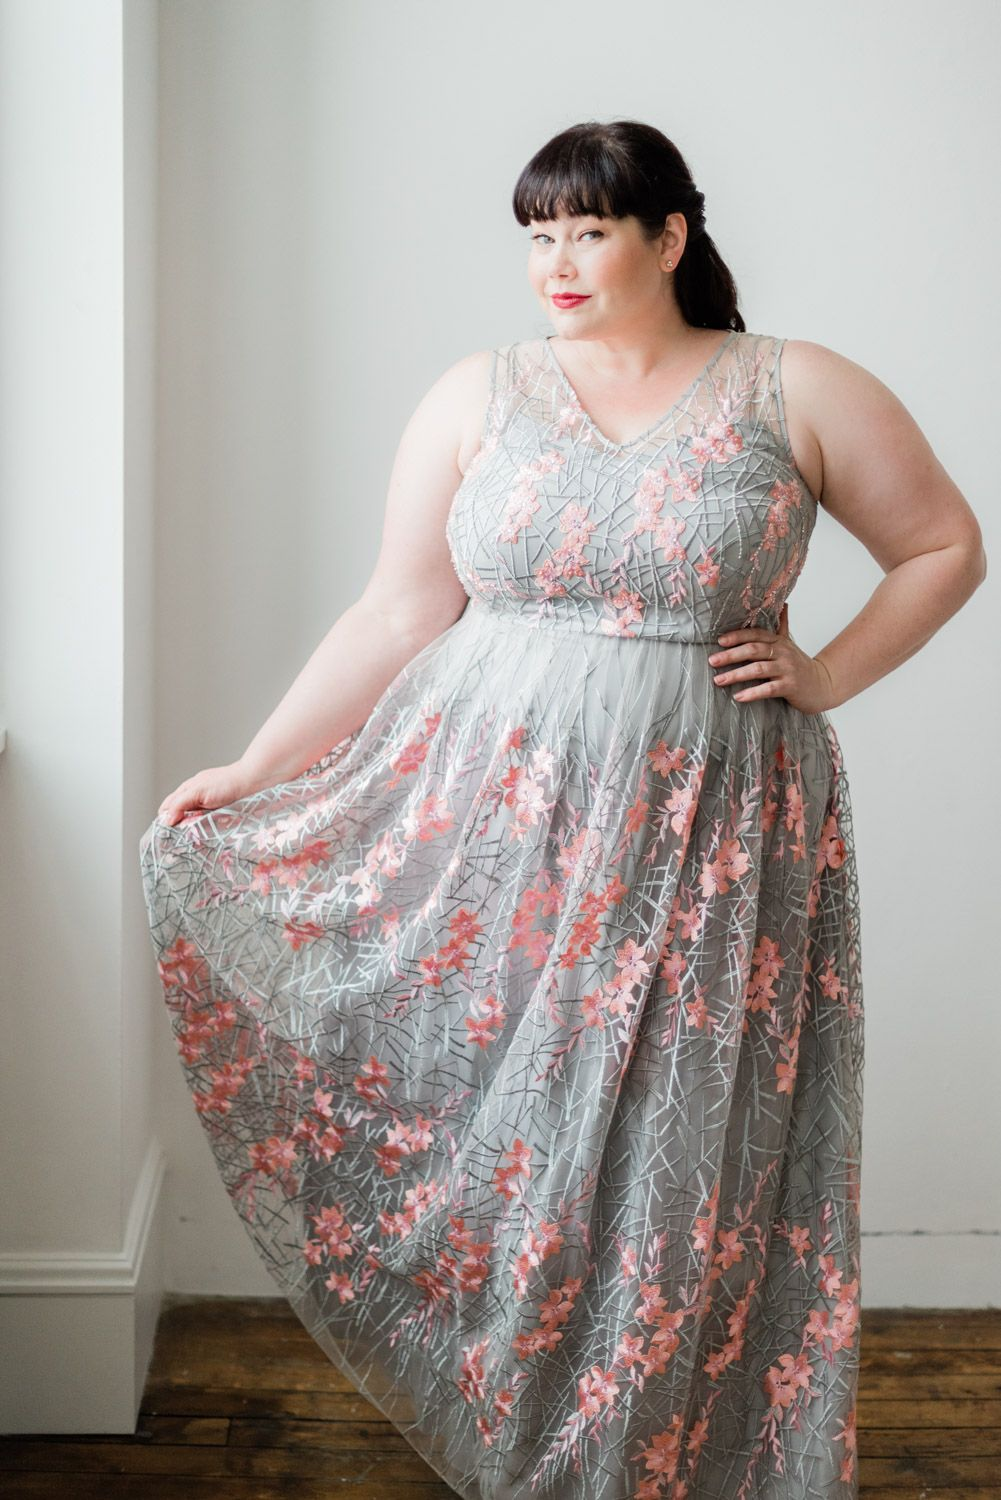 e98d91a8758 Macy's Plus Size Formal Dresses – Fashion dresses